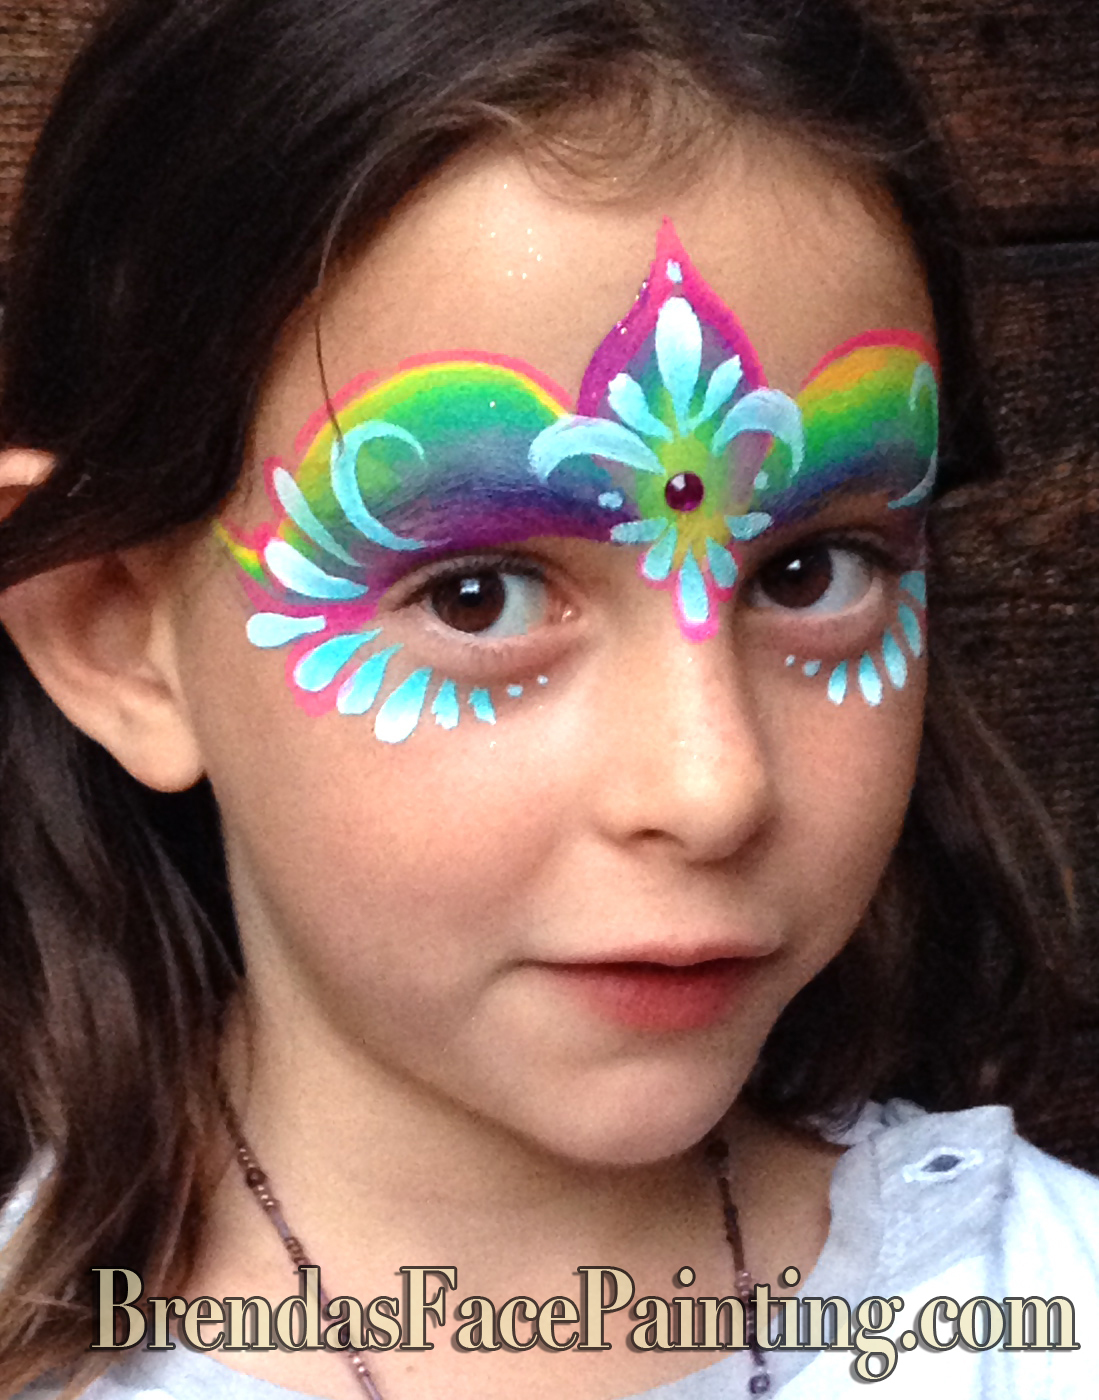 Brendasfacepainting face painting for parties festivals for Face painting for parties